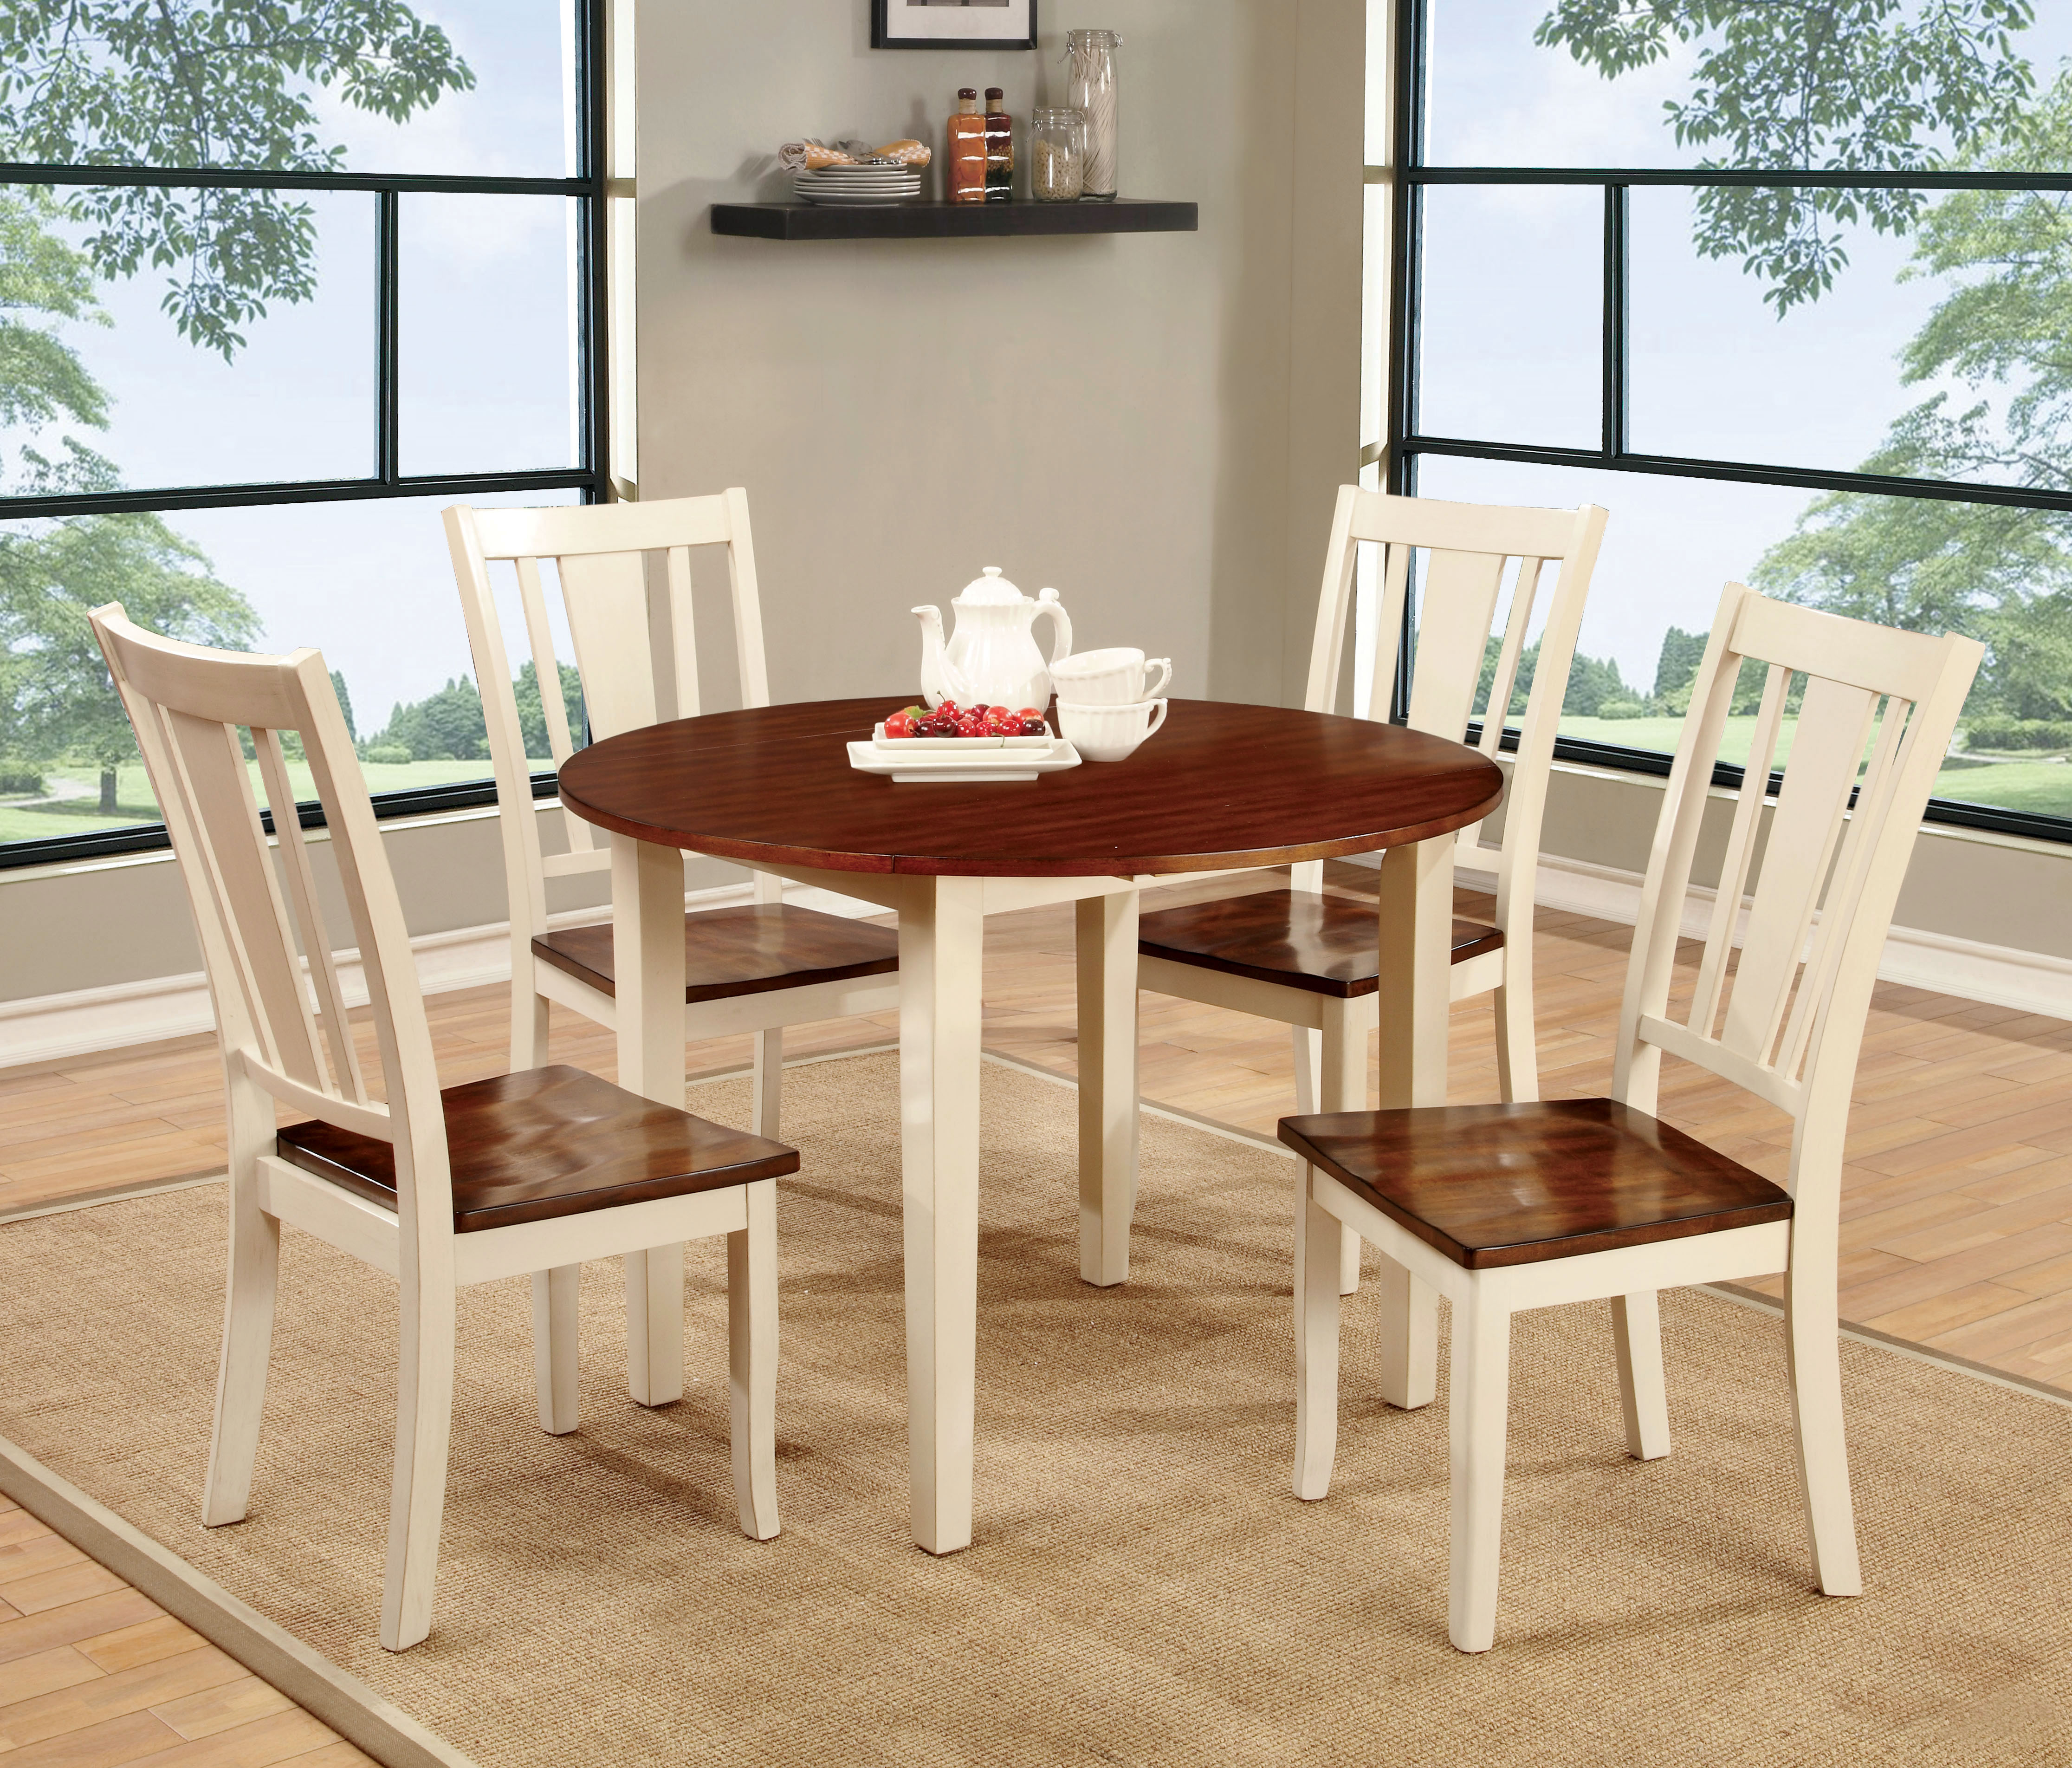 p P two tone kitchen table Furniture of America Two Tone Carmen Round Dining Table Home Furniture Dining Kitchen Furniture Dining Tables